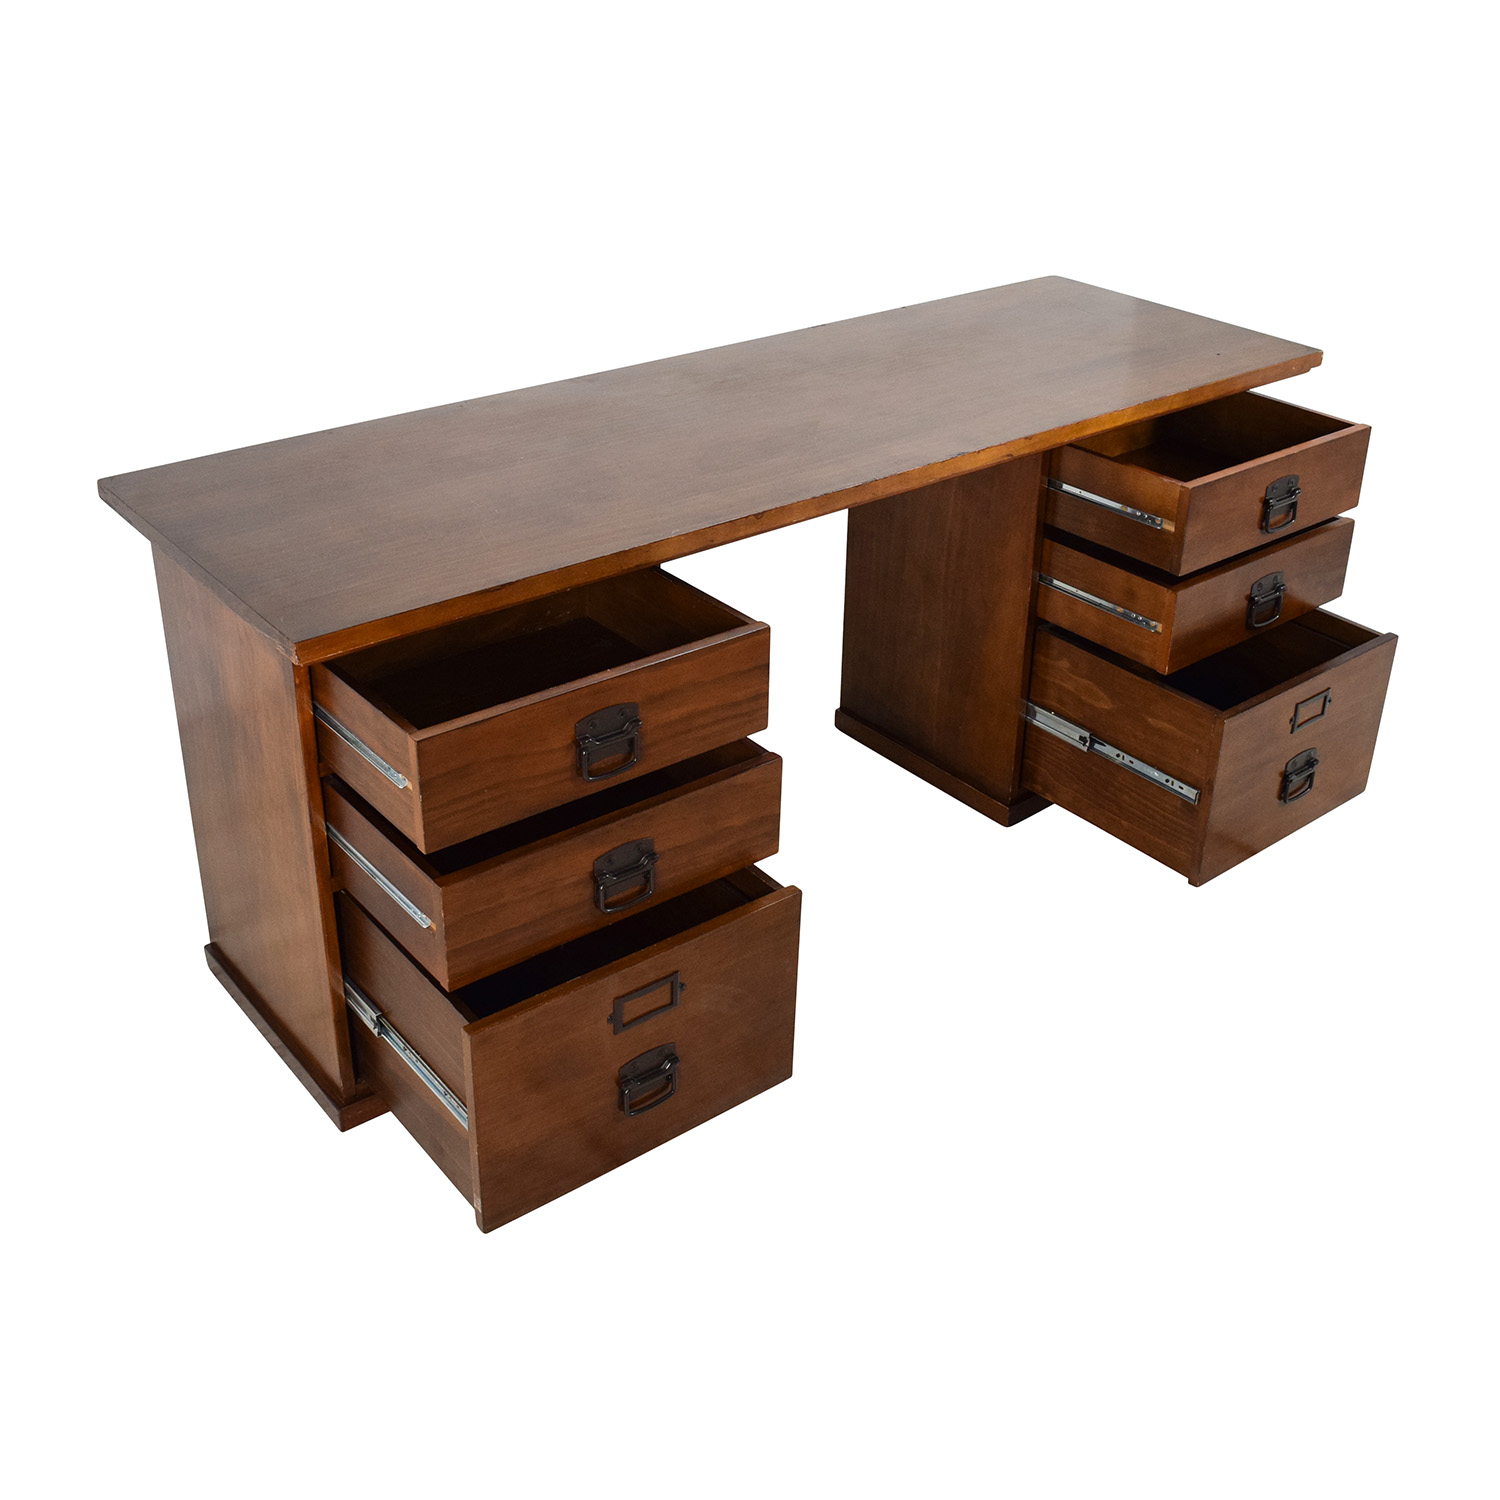 75 off pottery barn pottery barn bedford rectangular 6 drawer desk tables - Ideen ordnungssysteme hause pottery barn ...